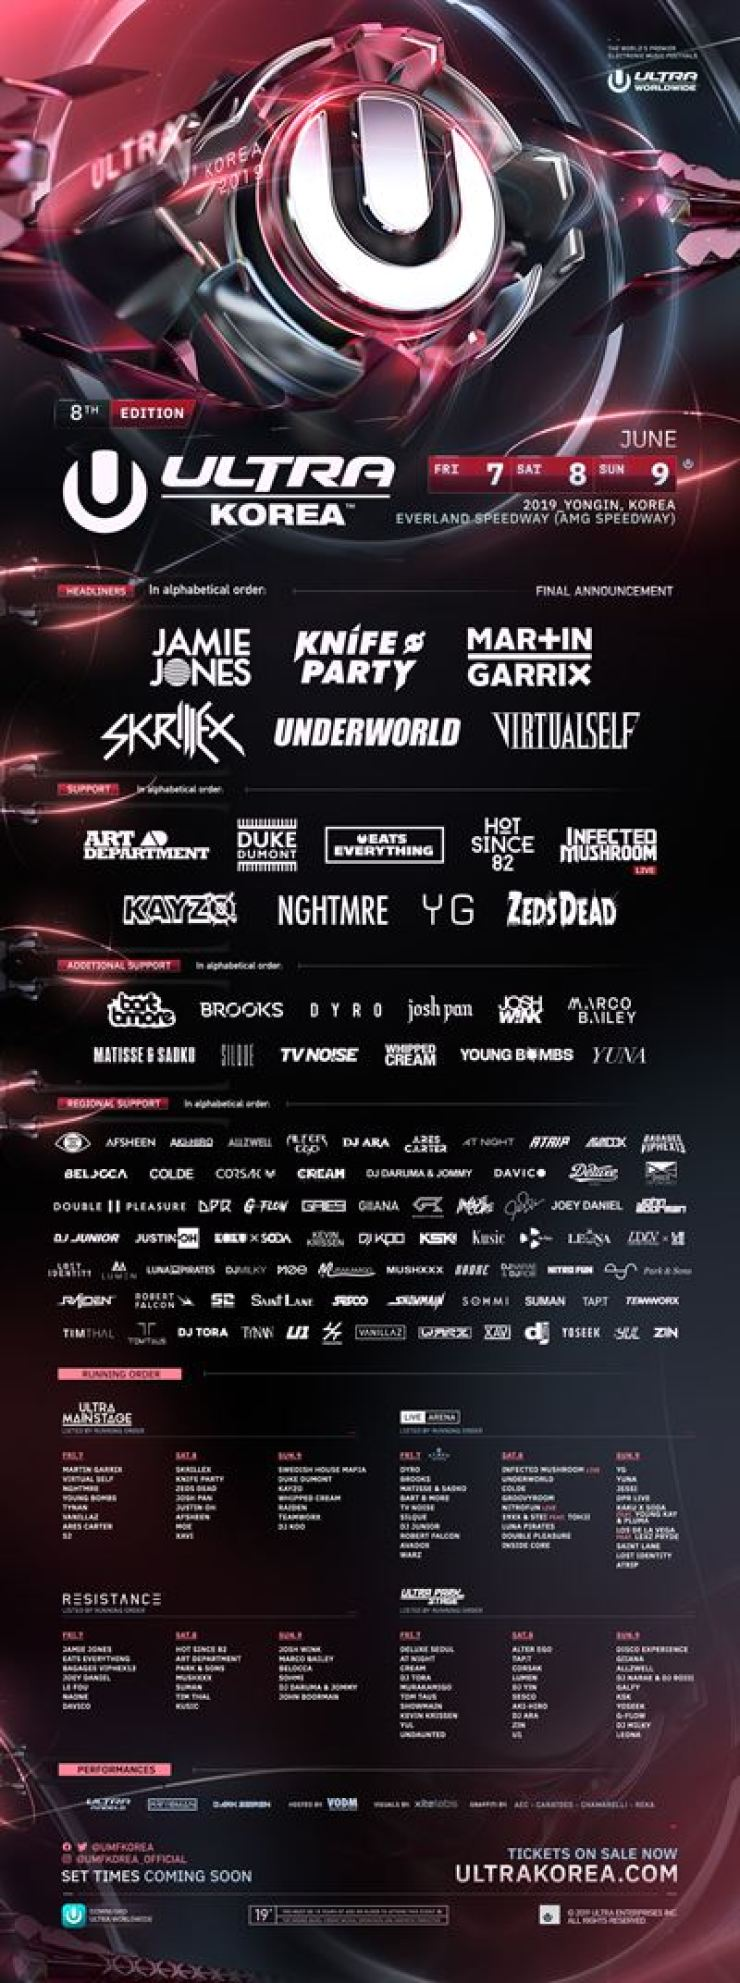 ULTRA Korea will be held on June 7-9 at Everland Speedway in Yongin, Gyeonggi Province.